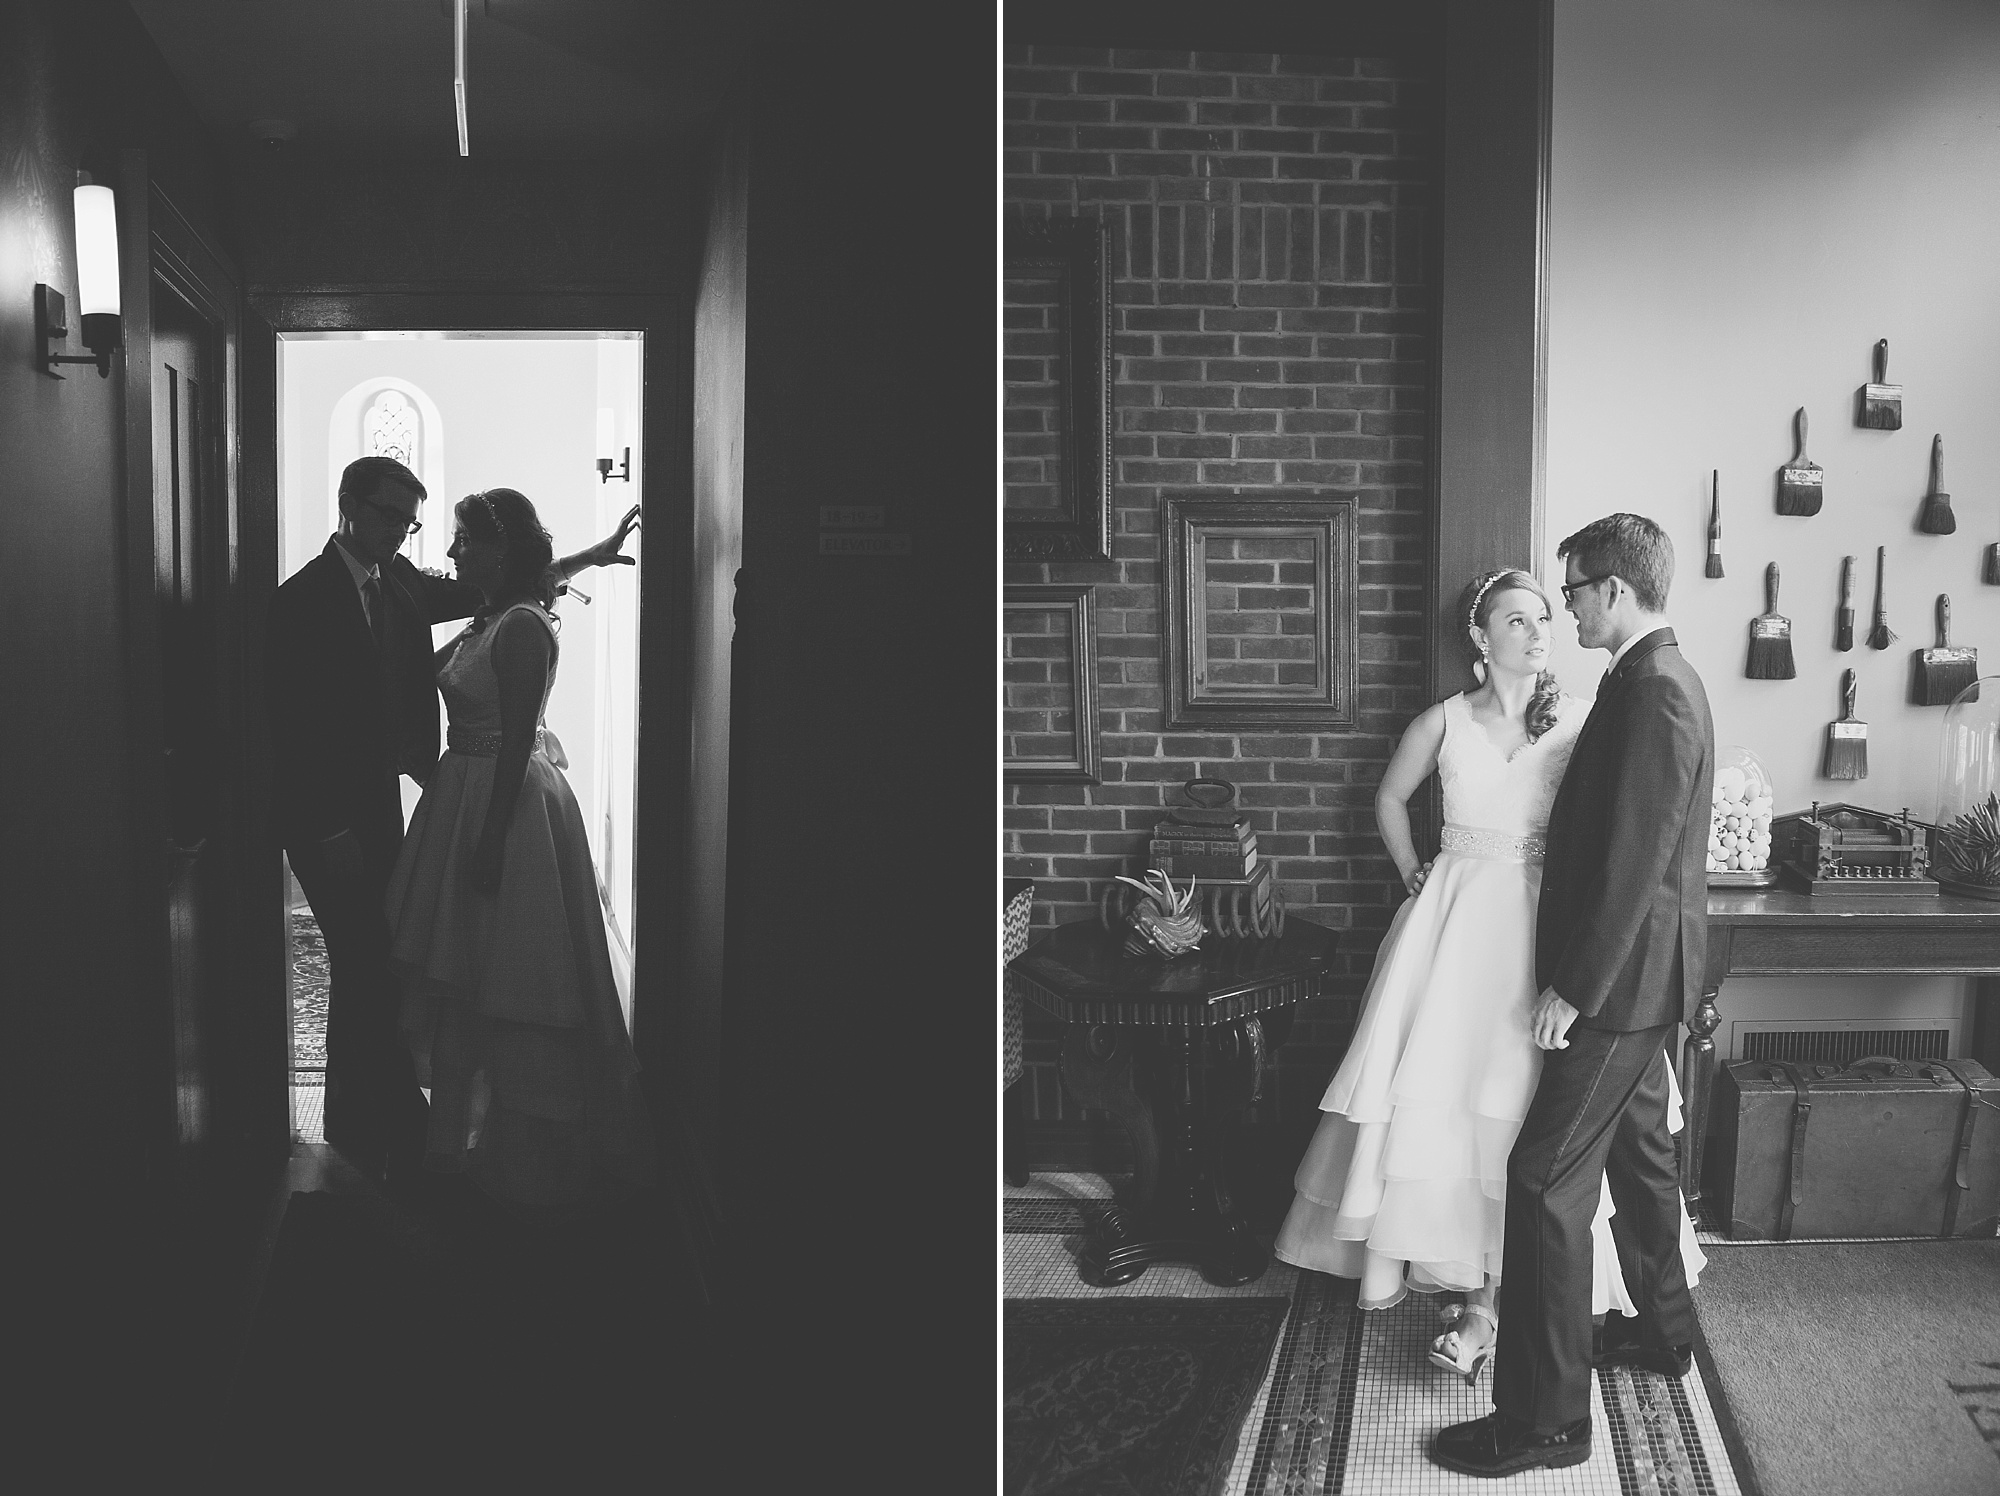 Joe_Mac_Creative_Rachel_and_Matt_Wedding_Photography_0011.jpg